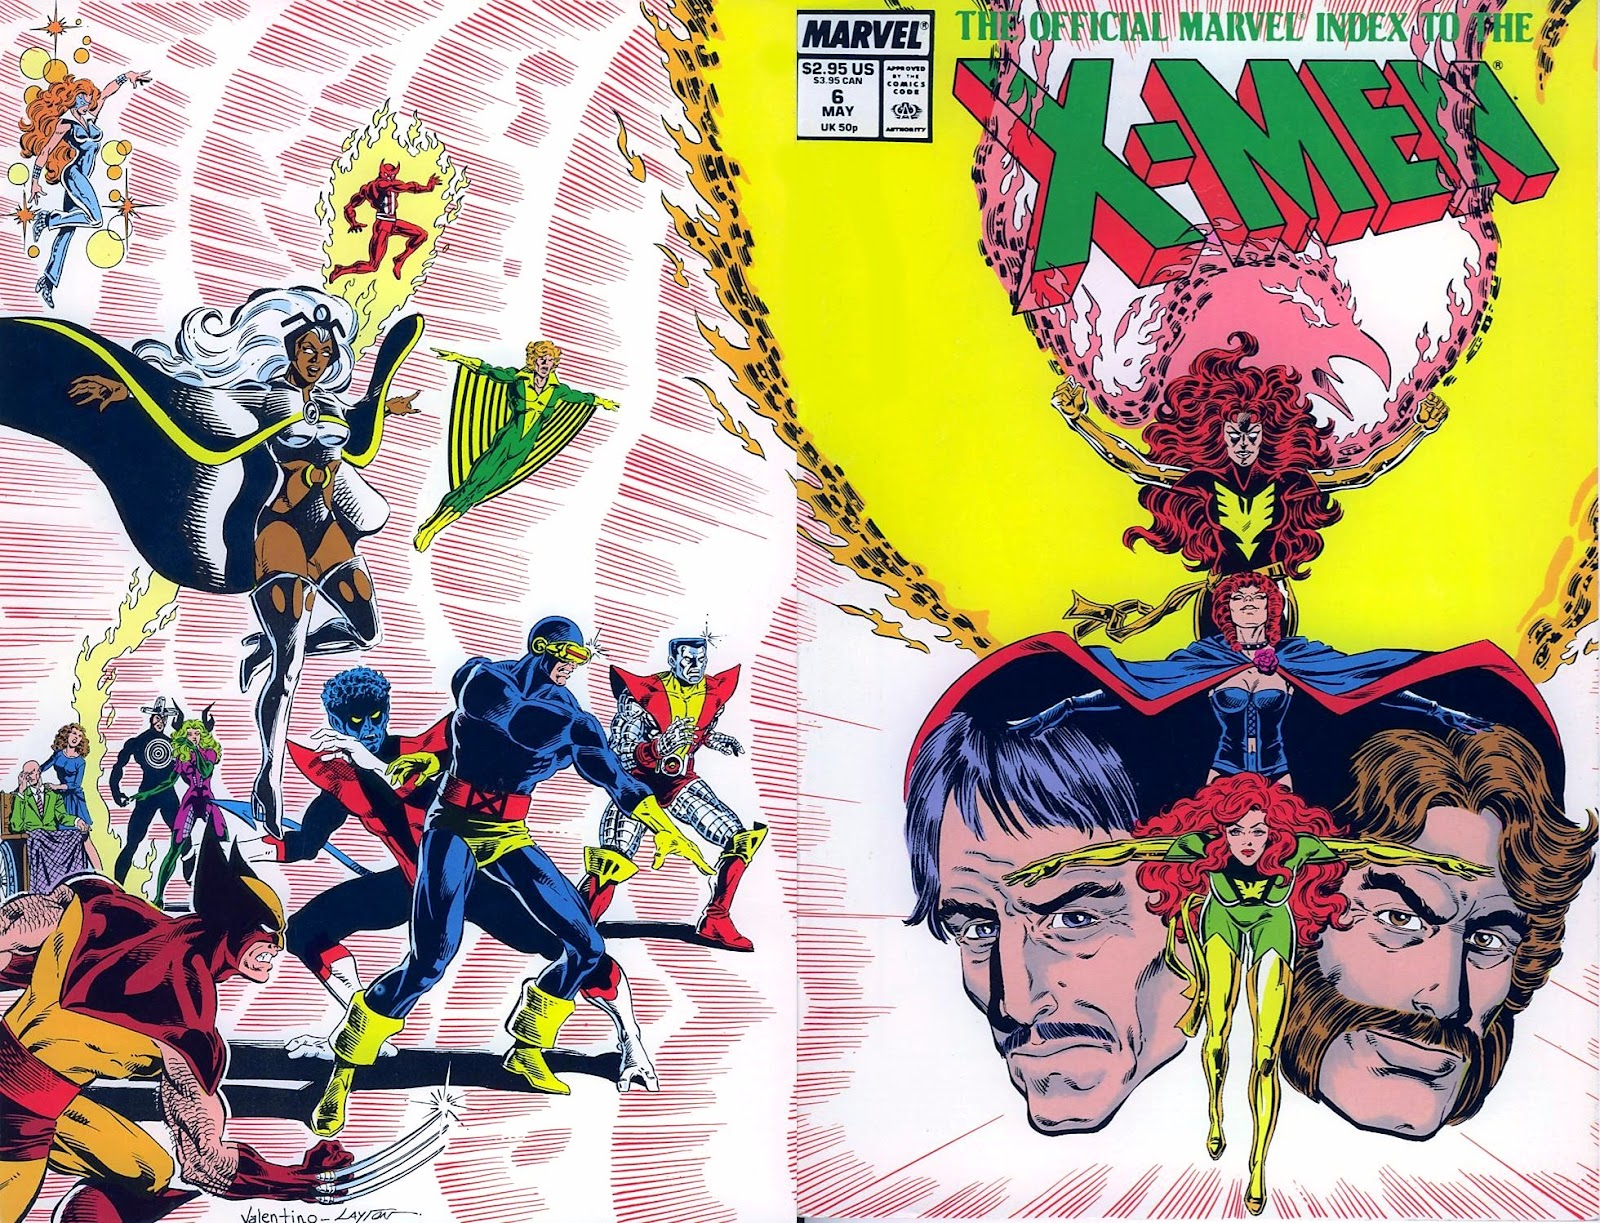 The Official Marvel Index To The X-Men (1987) issue 6 - Page 1